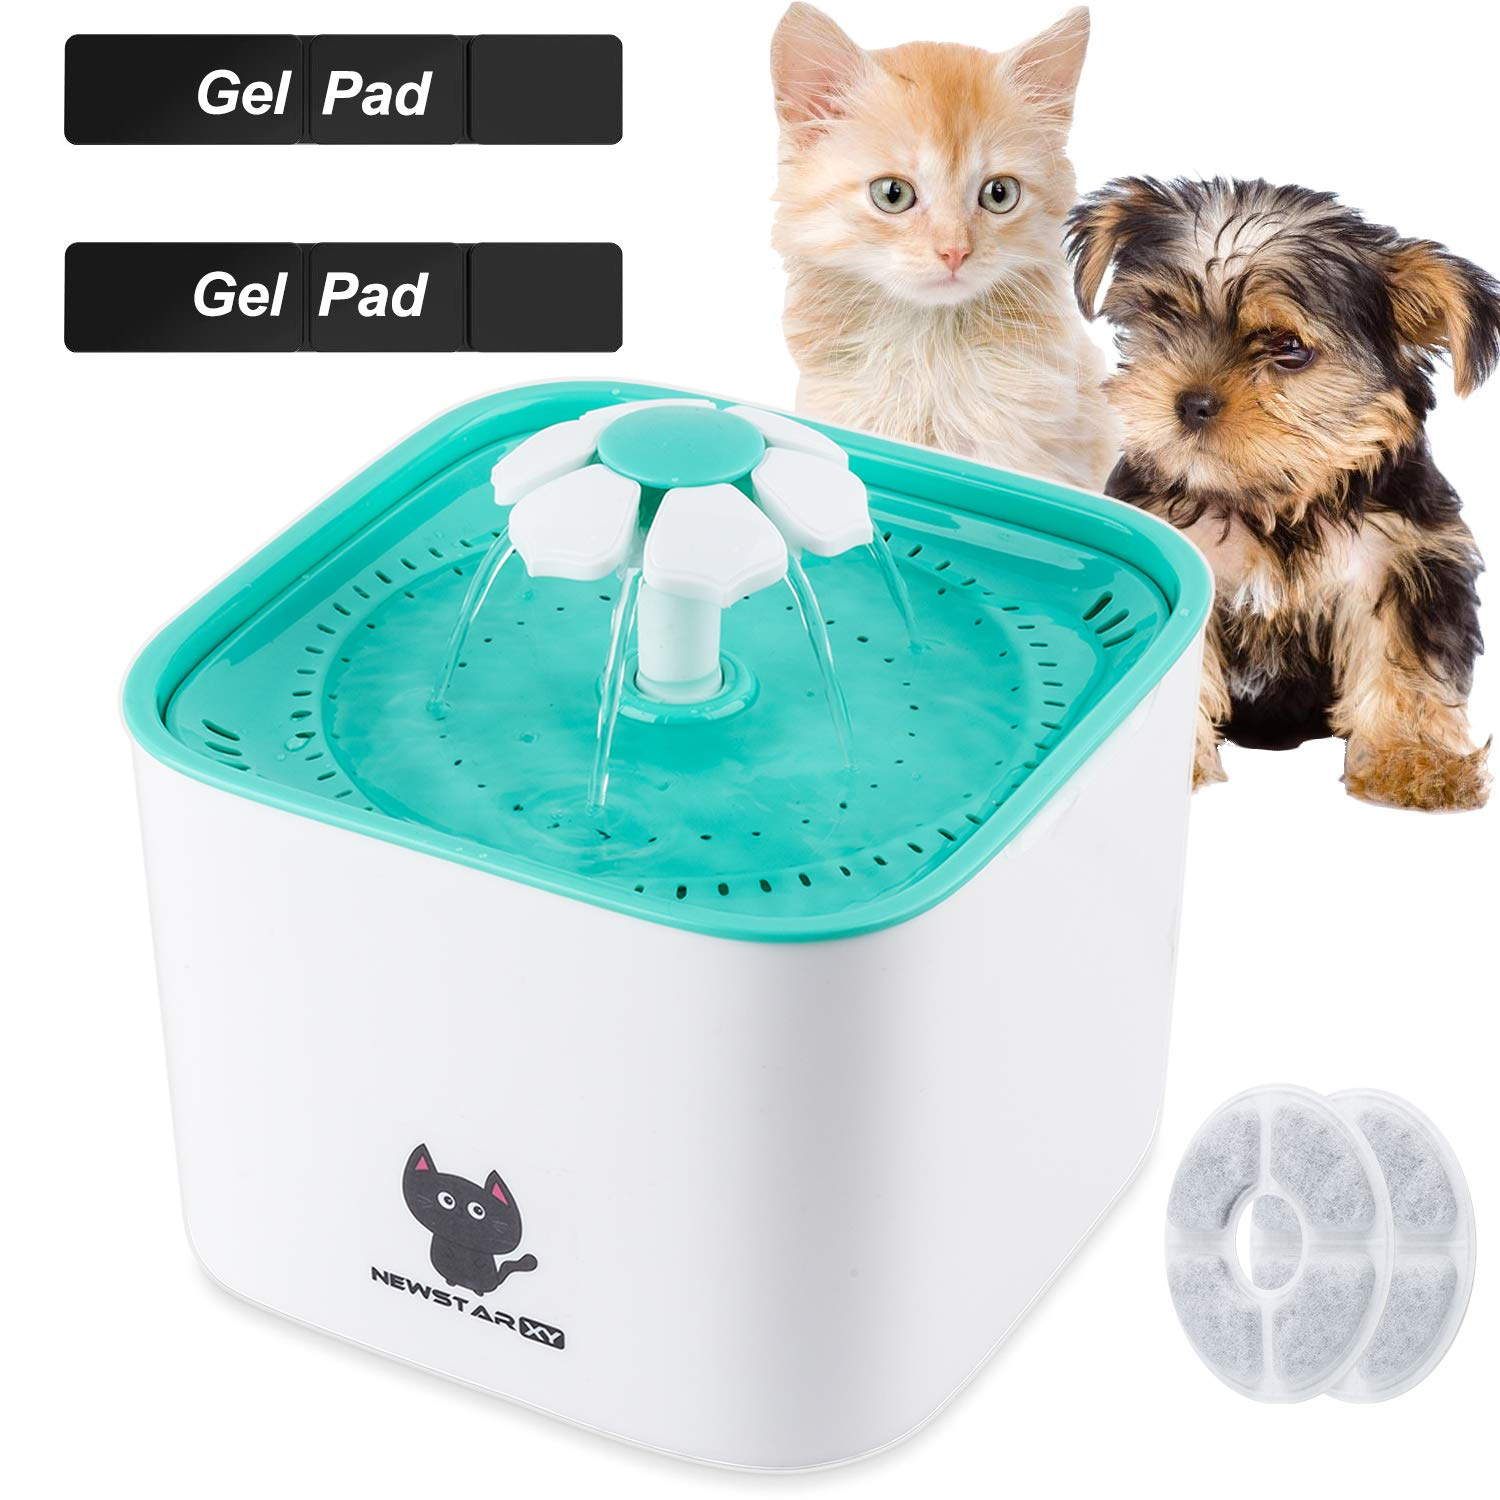 Newstarxy Cat Water Fountain, Automatic Electric Pet Dog Water Dispenser with Super Quiet Pump, Filters & Sticky Gel Pads | 2L, Green